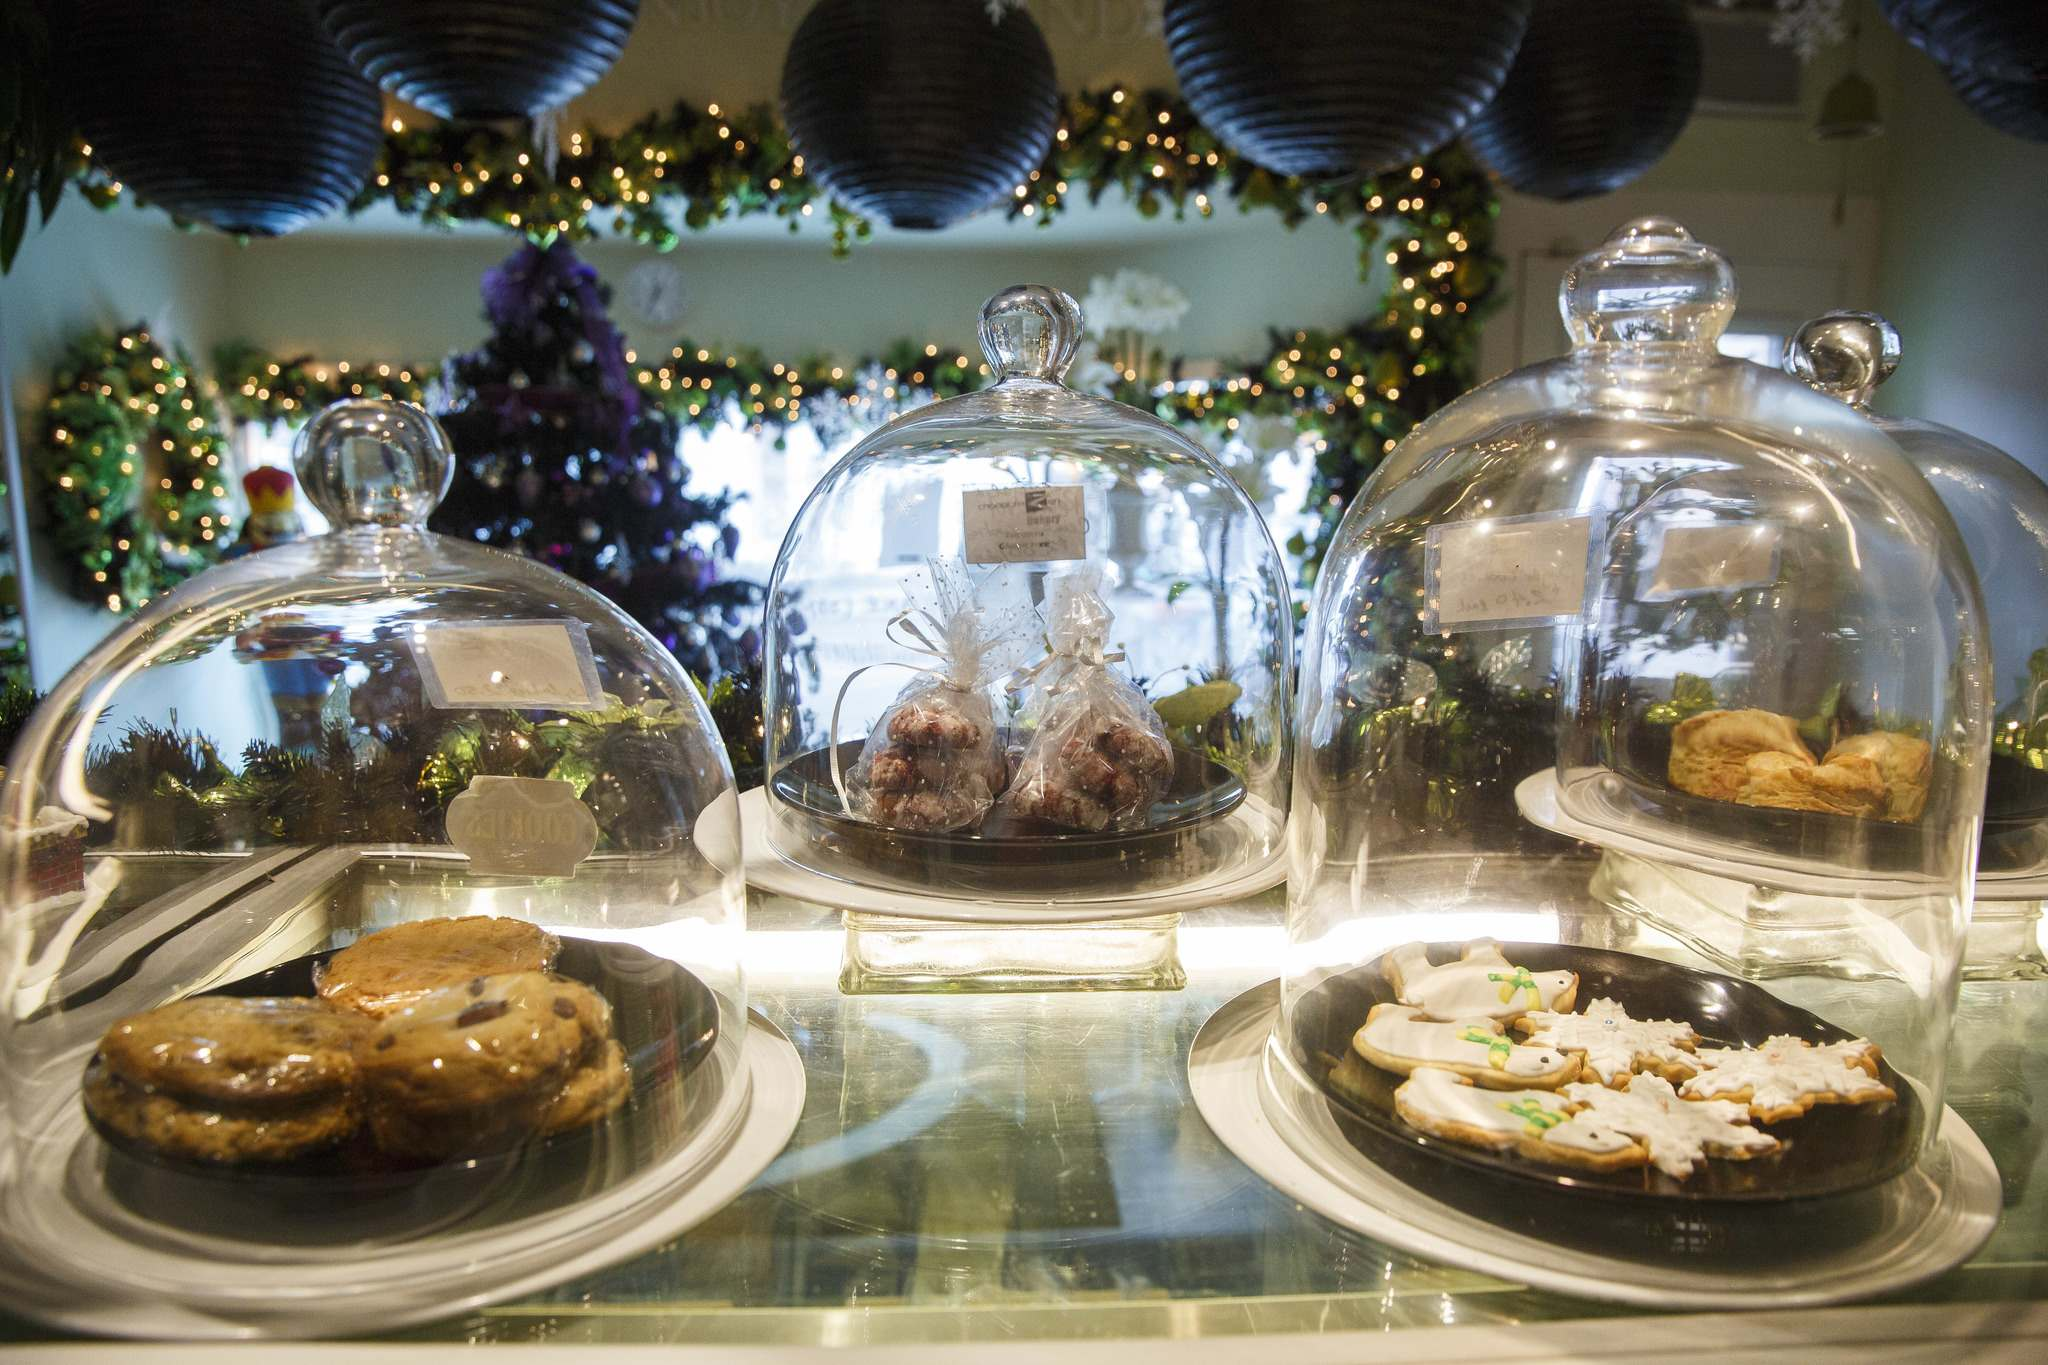 Displays of pastries are carefully covered for everyone's safety. (Mike Deal / Winnipeg Free Press)</p>